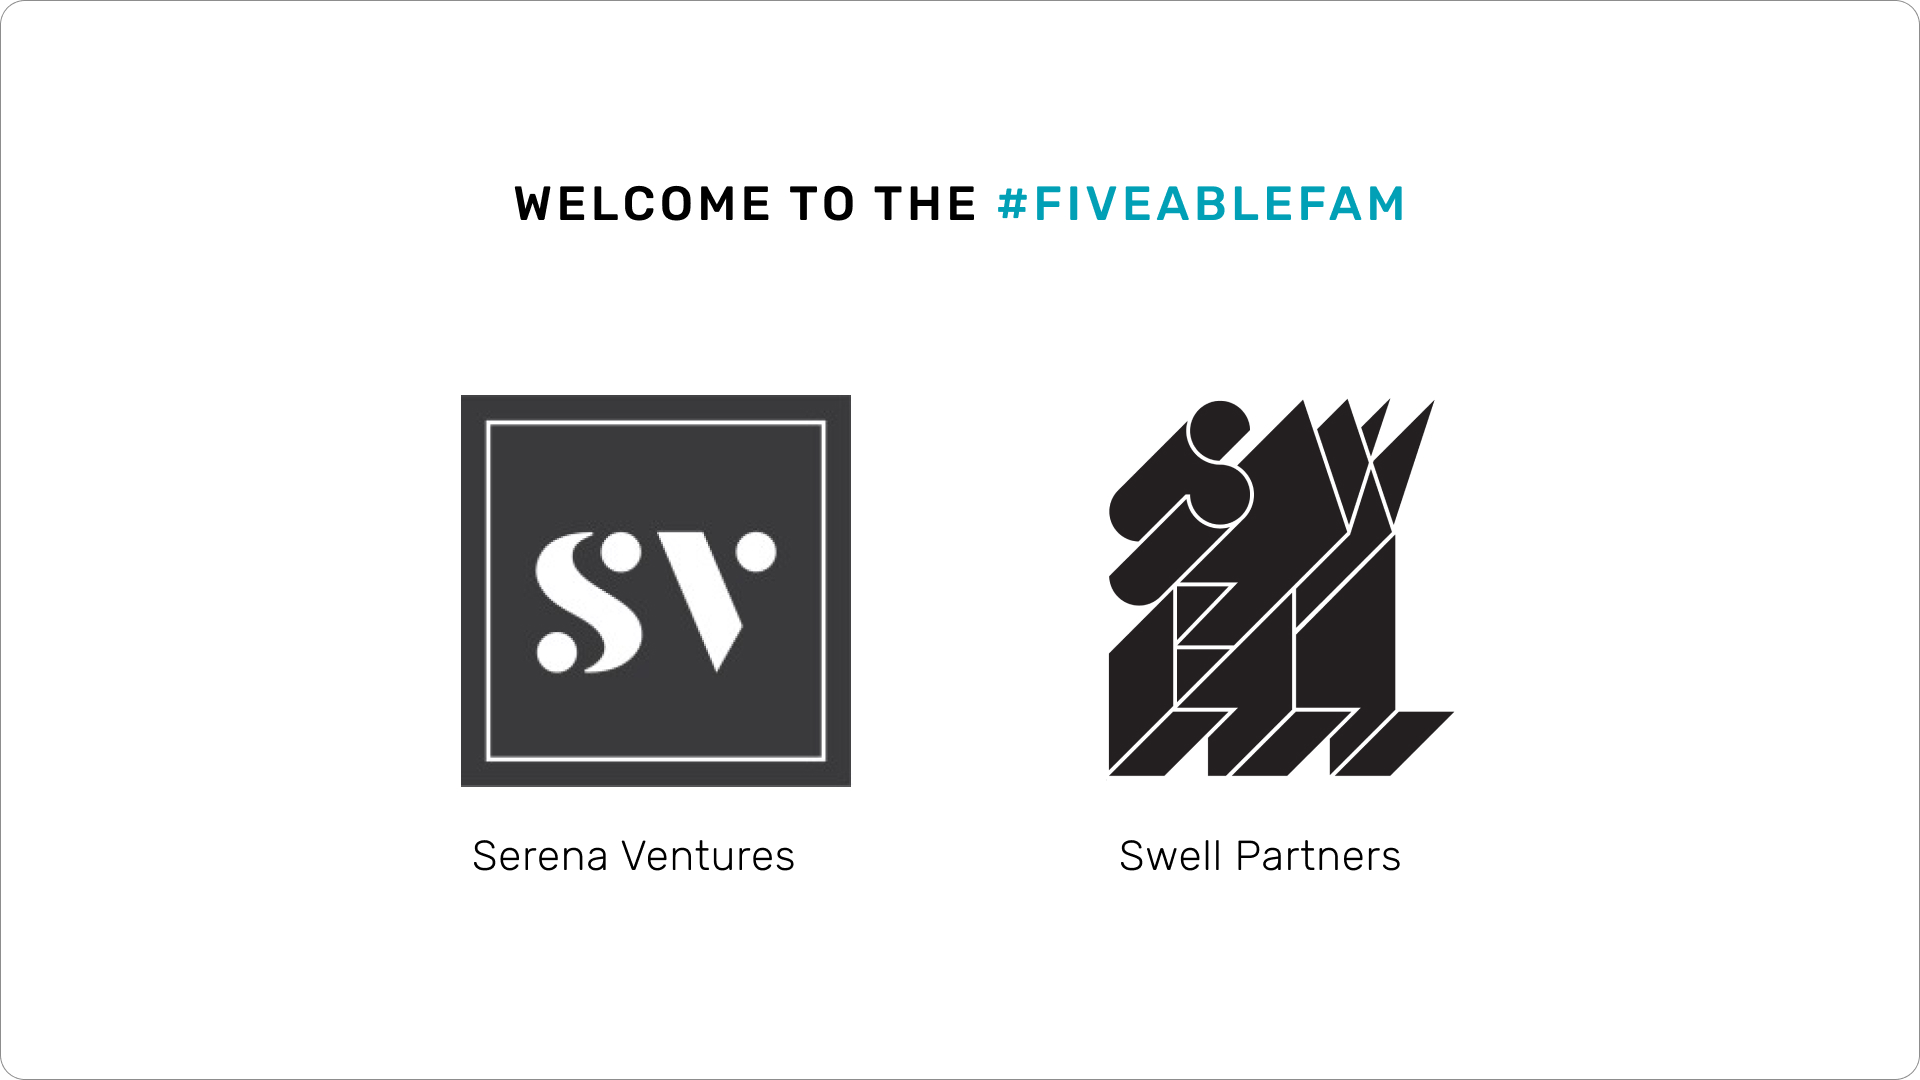 Serena Williams backs Fiveable as we hit new milestone of 600k students a month